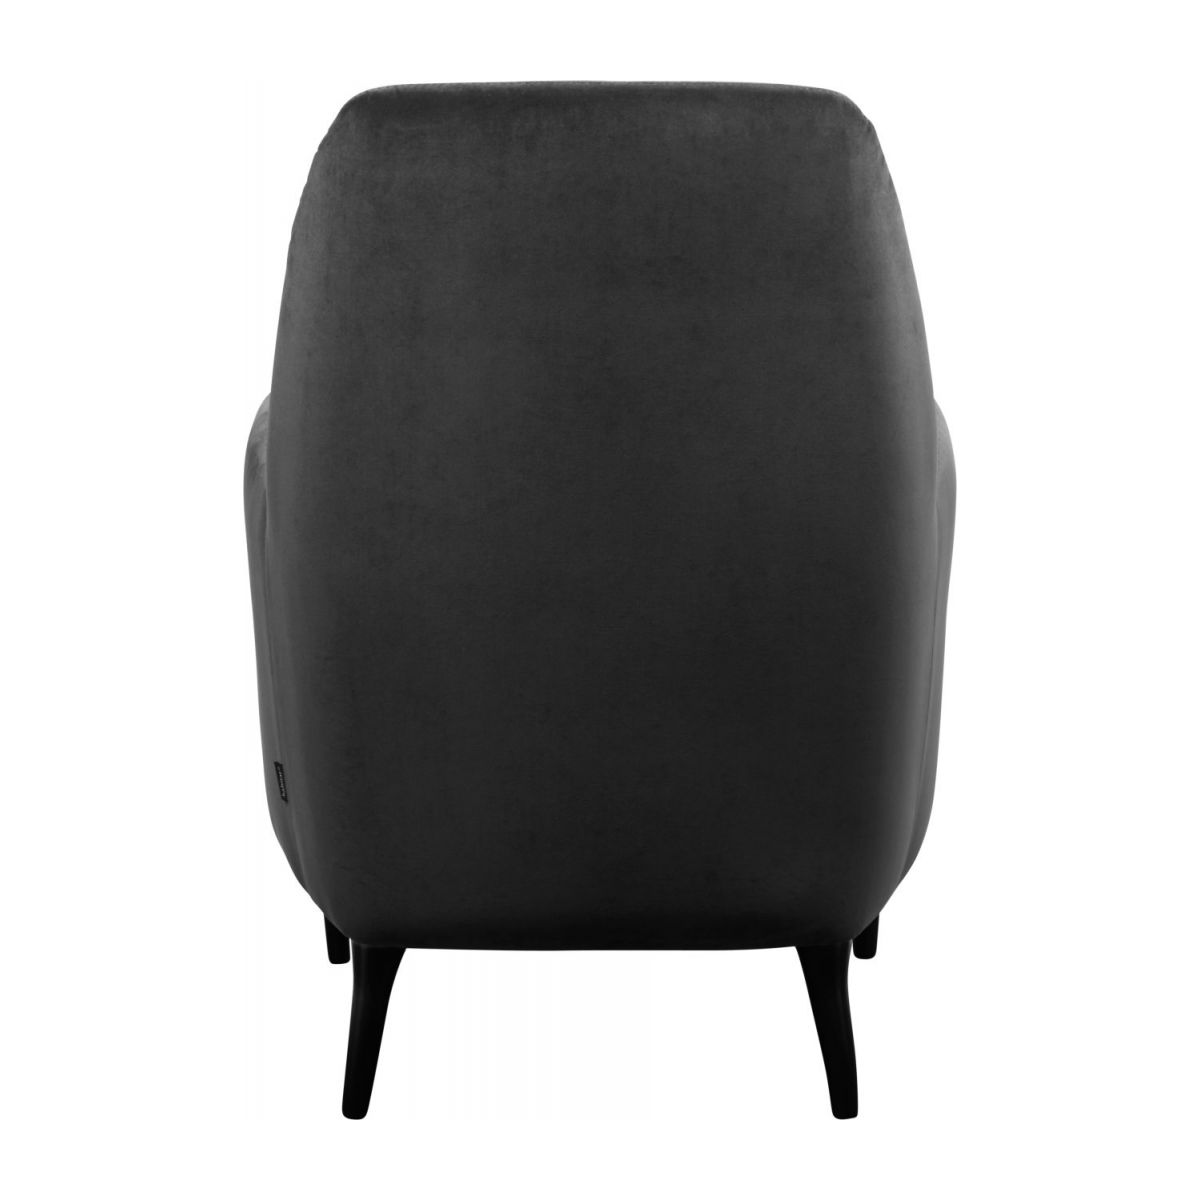 Velvet armchair, grey n°3